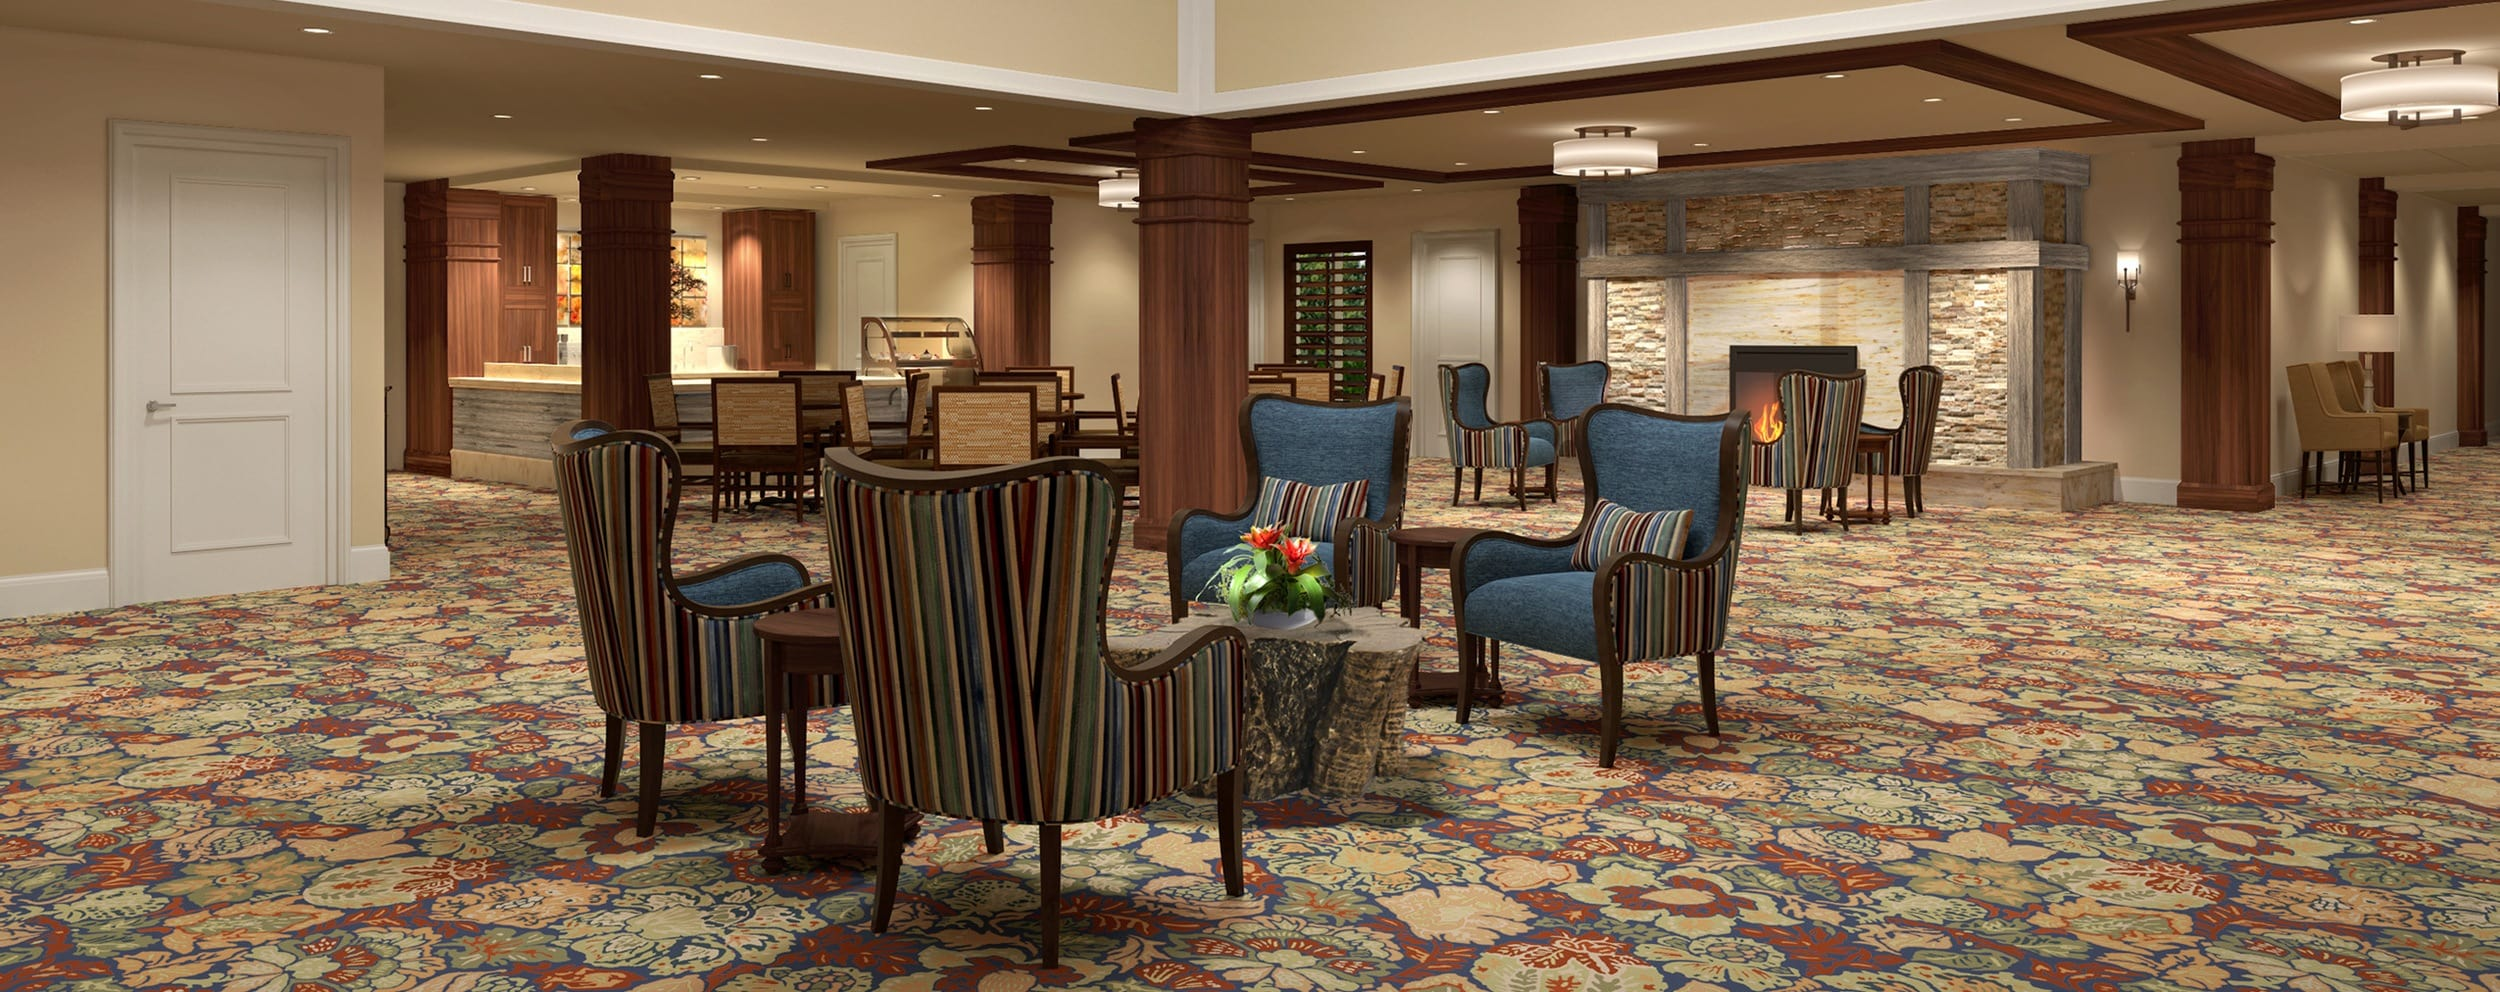 Levels of Senior Living care at senior living in Long Grove